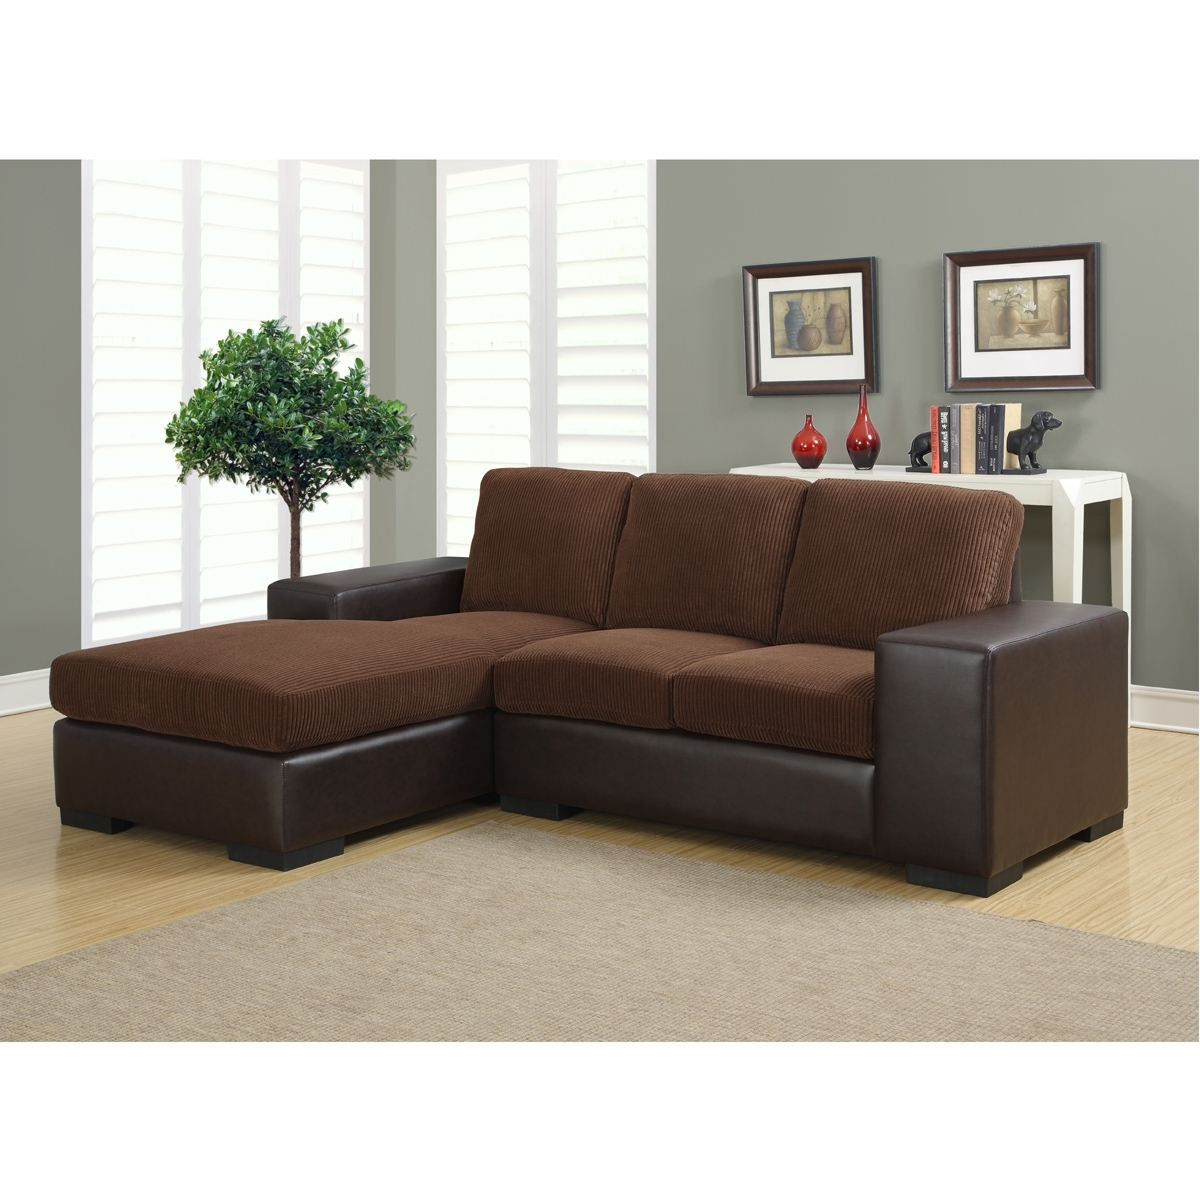 Jacob Sectional Sofa (Gallery 5 of 15)